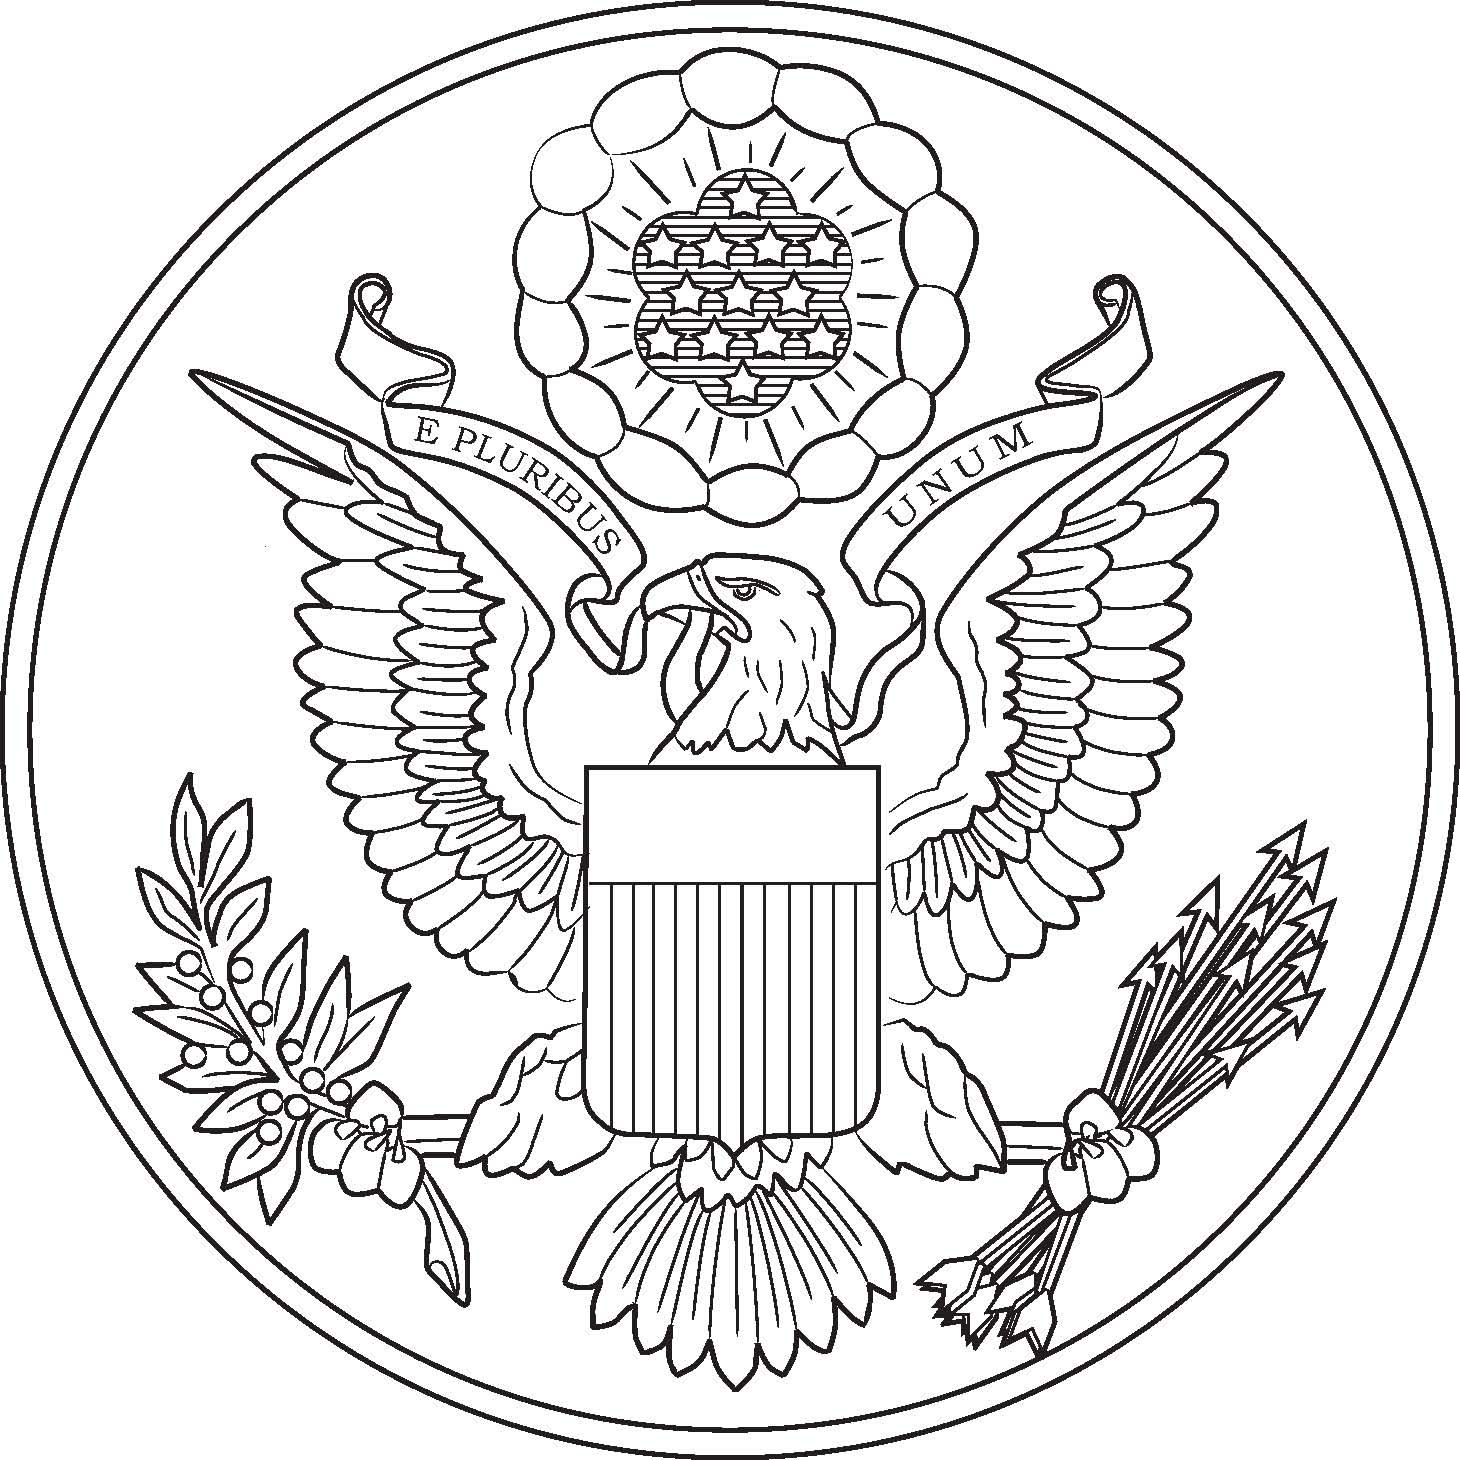 Patriotic eagle coloring pages - Coloring Pages Washington Dc Coloring Pages The Great Seal Of The United States